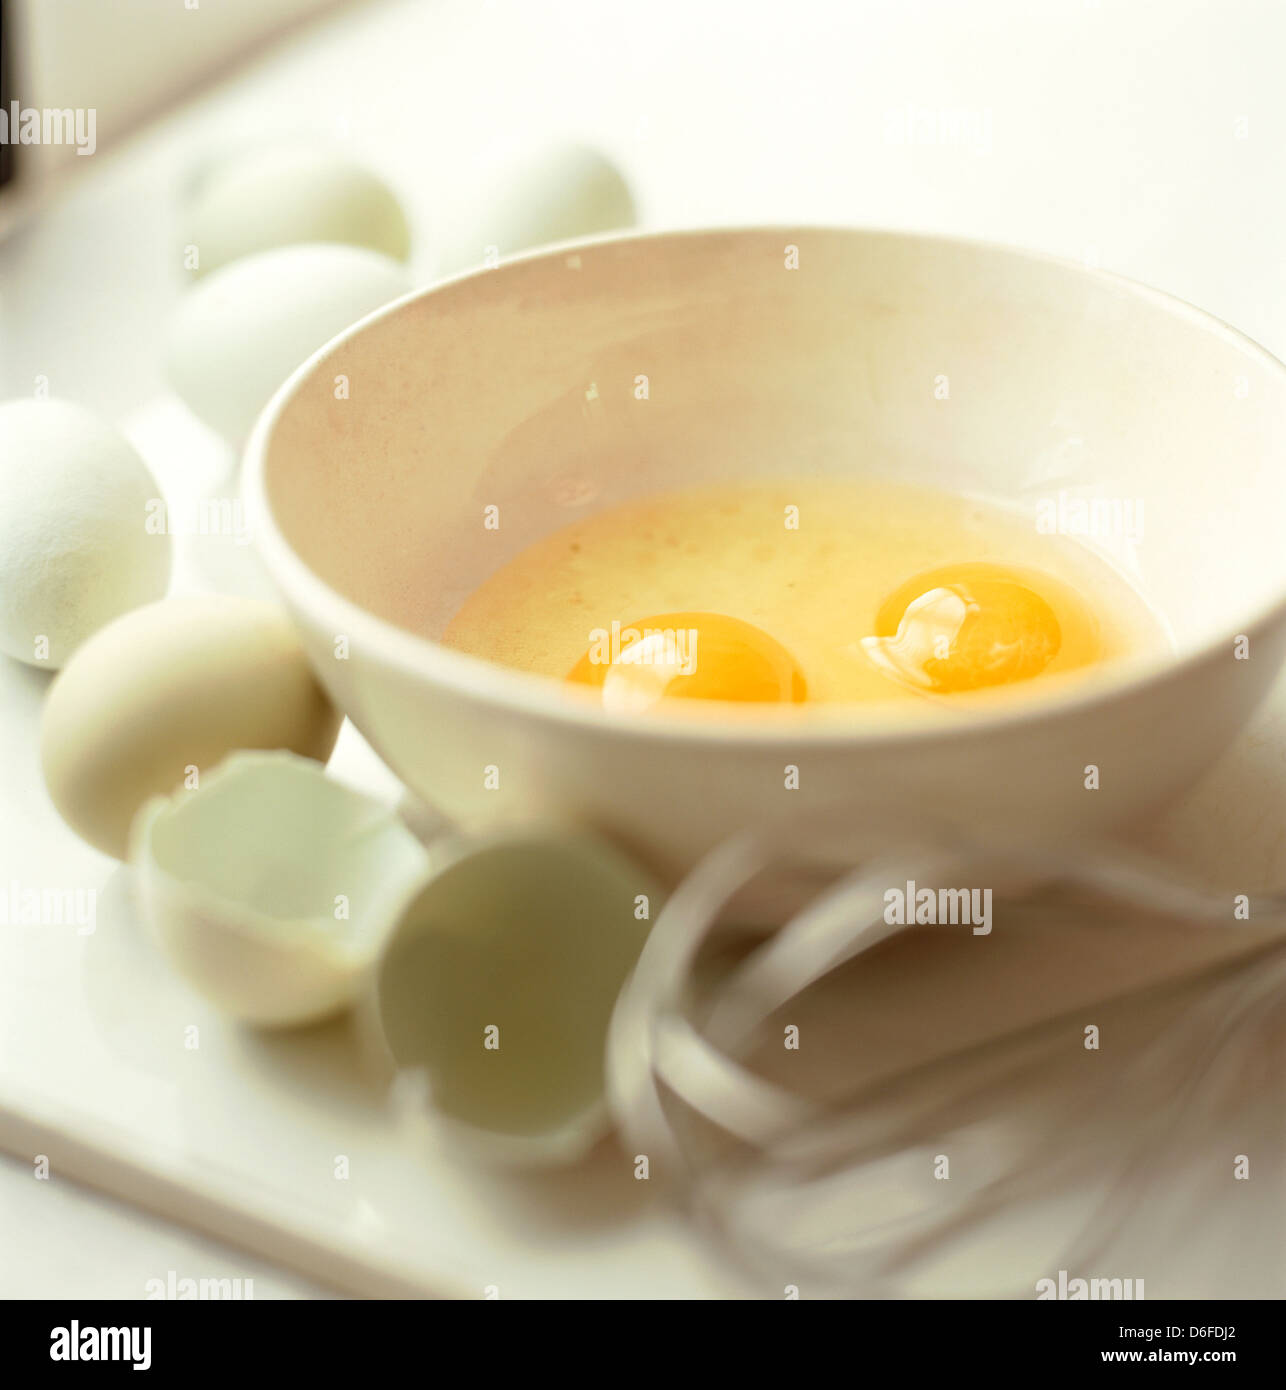 Eggs in a Bowl - Stock Image